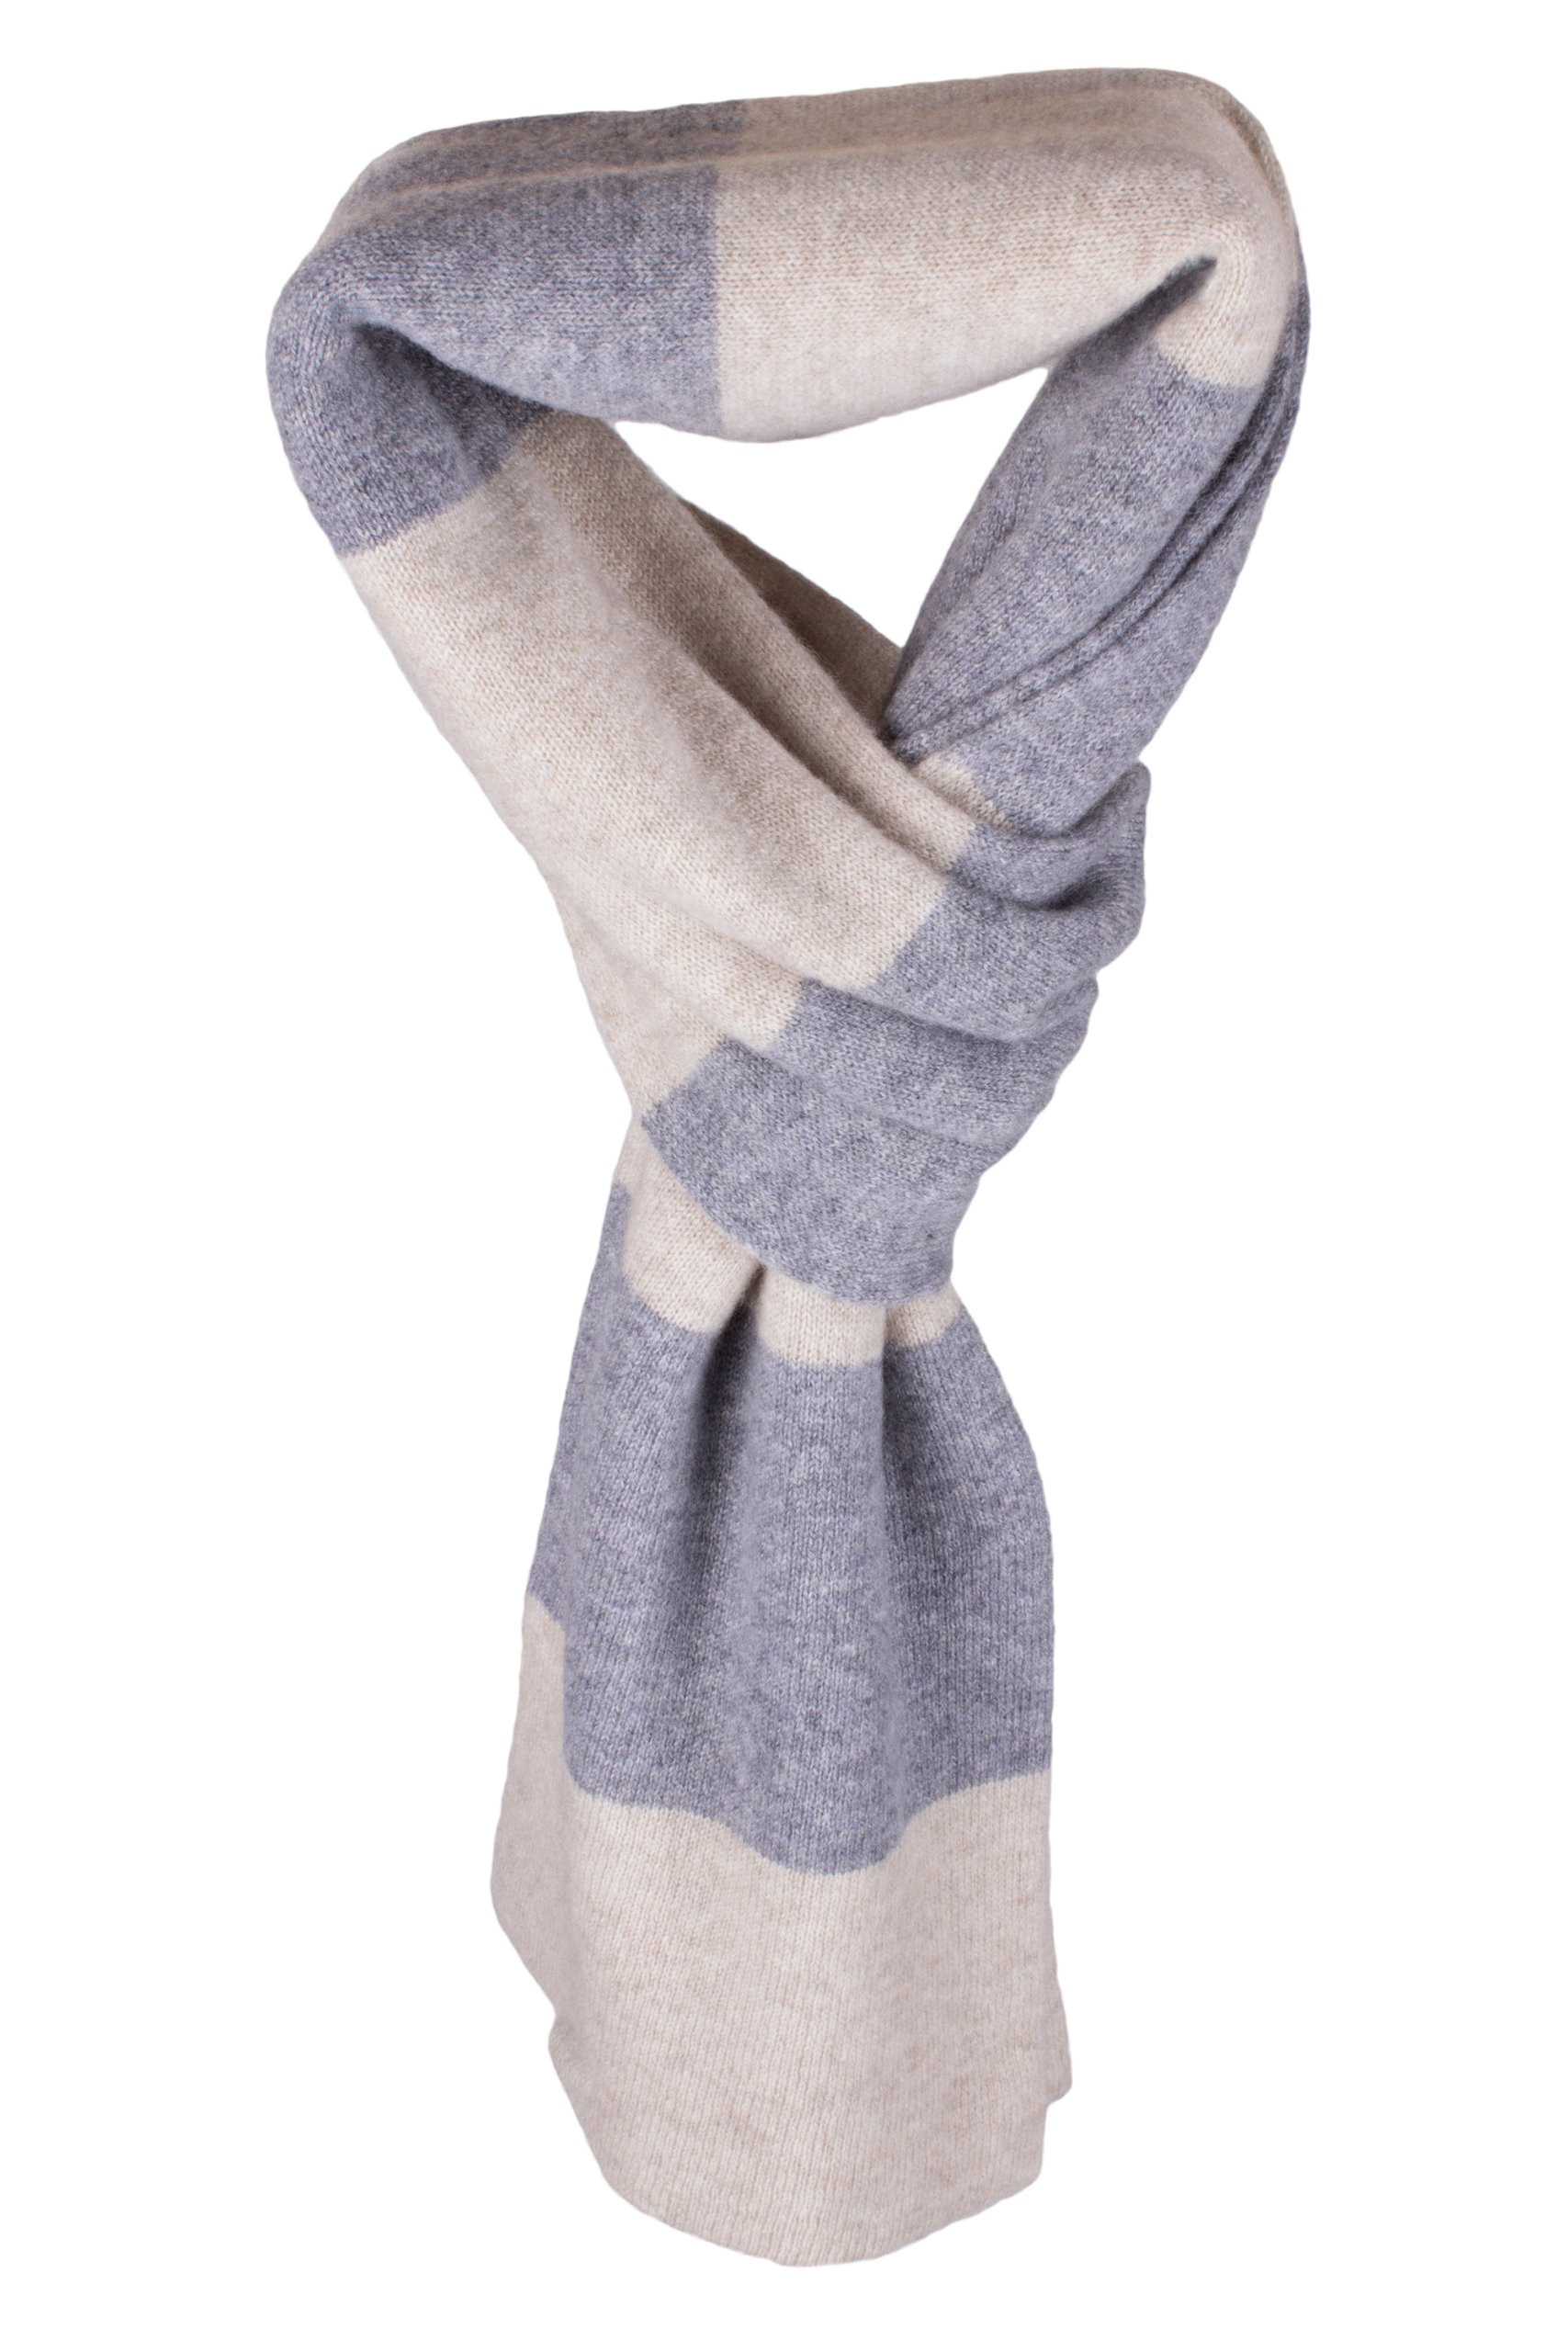 Ladies Striped 100% Cashmere Scarf - Light Natural / Light Gray - hand made in Scotland by Love Cashmere